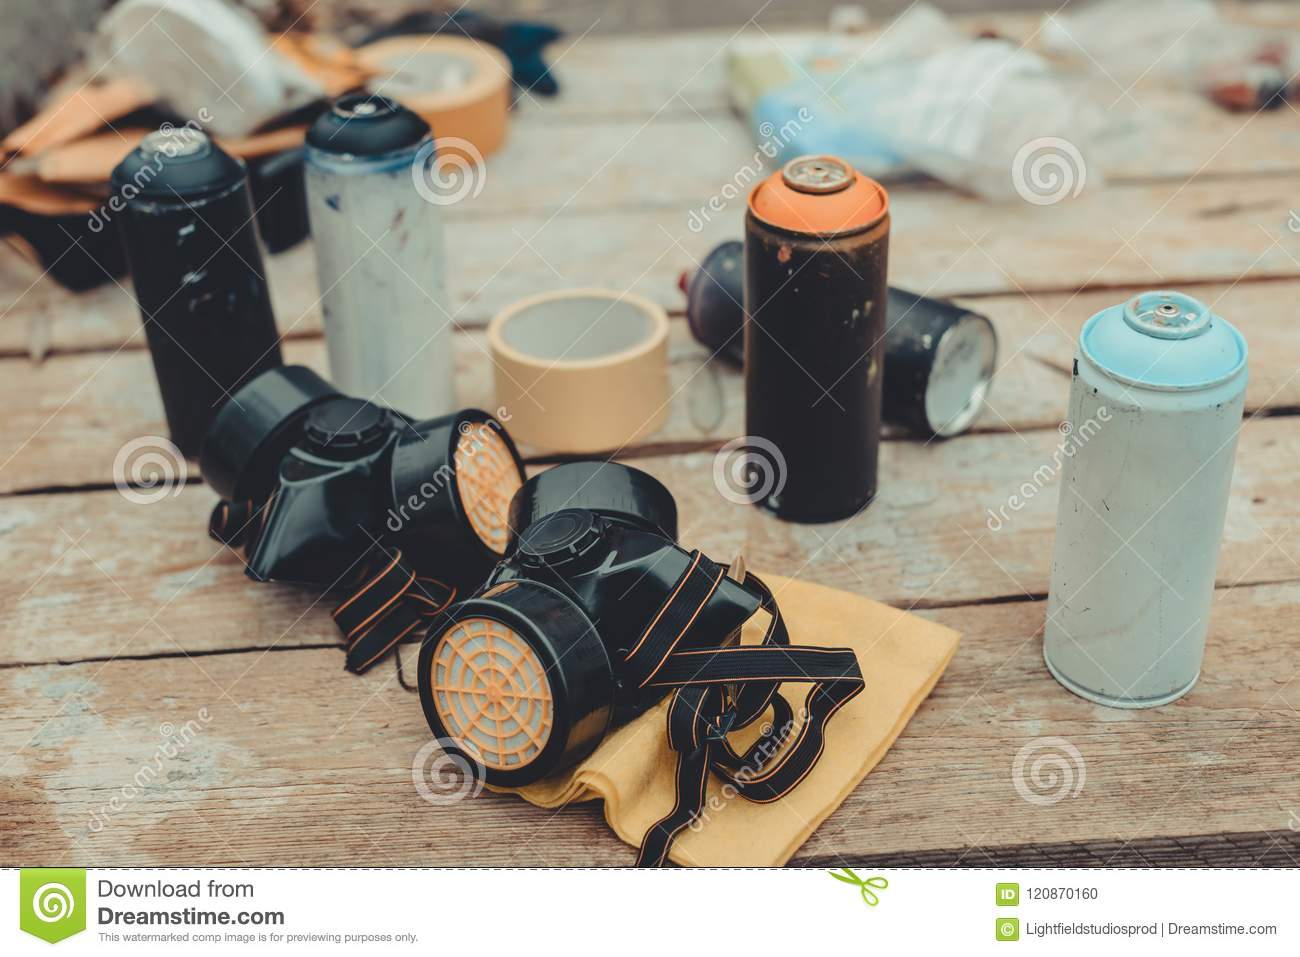 Respirators And Cans With Colorful Spray Paint Stock Photo Image Of Painting City 120870160